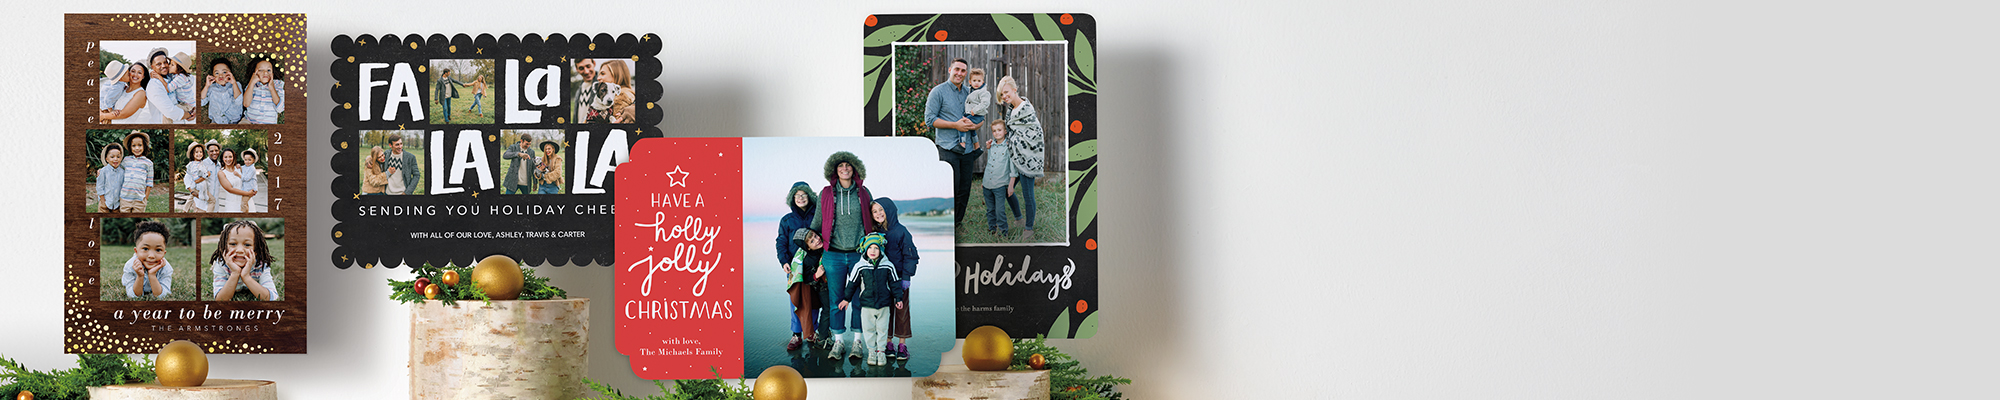 Photo Cards Send season's greetings with stunning designs fit for every fridge and mantel.